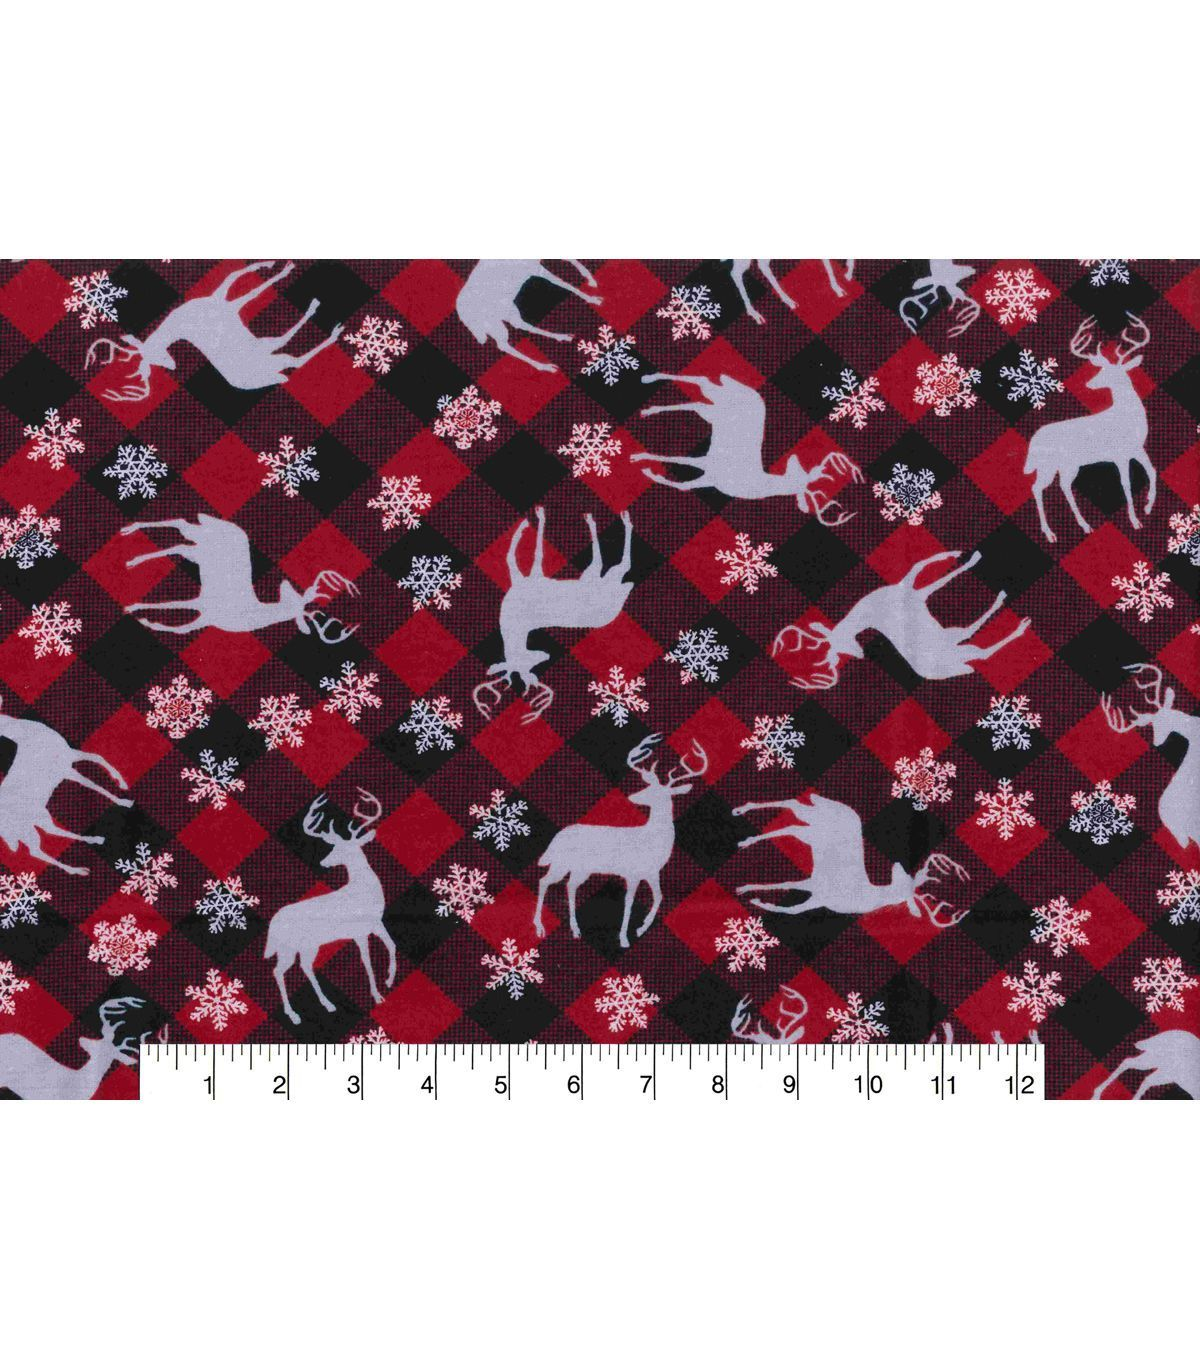 Red flannel fabric  Makerus Holiday Flannel Fabric